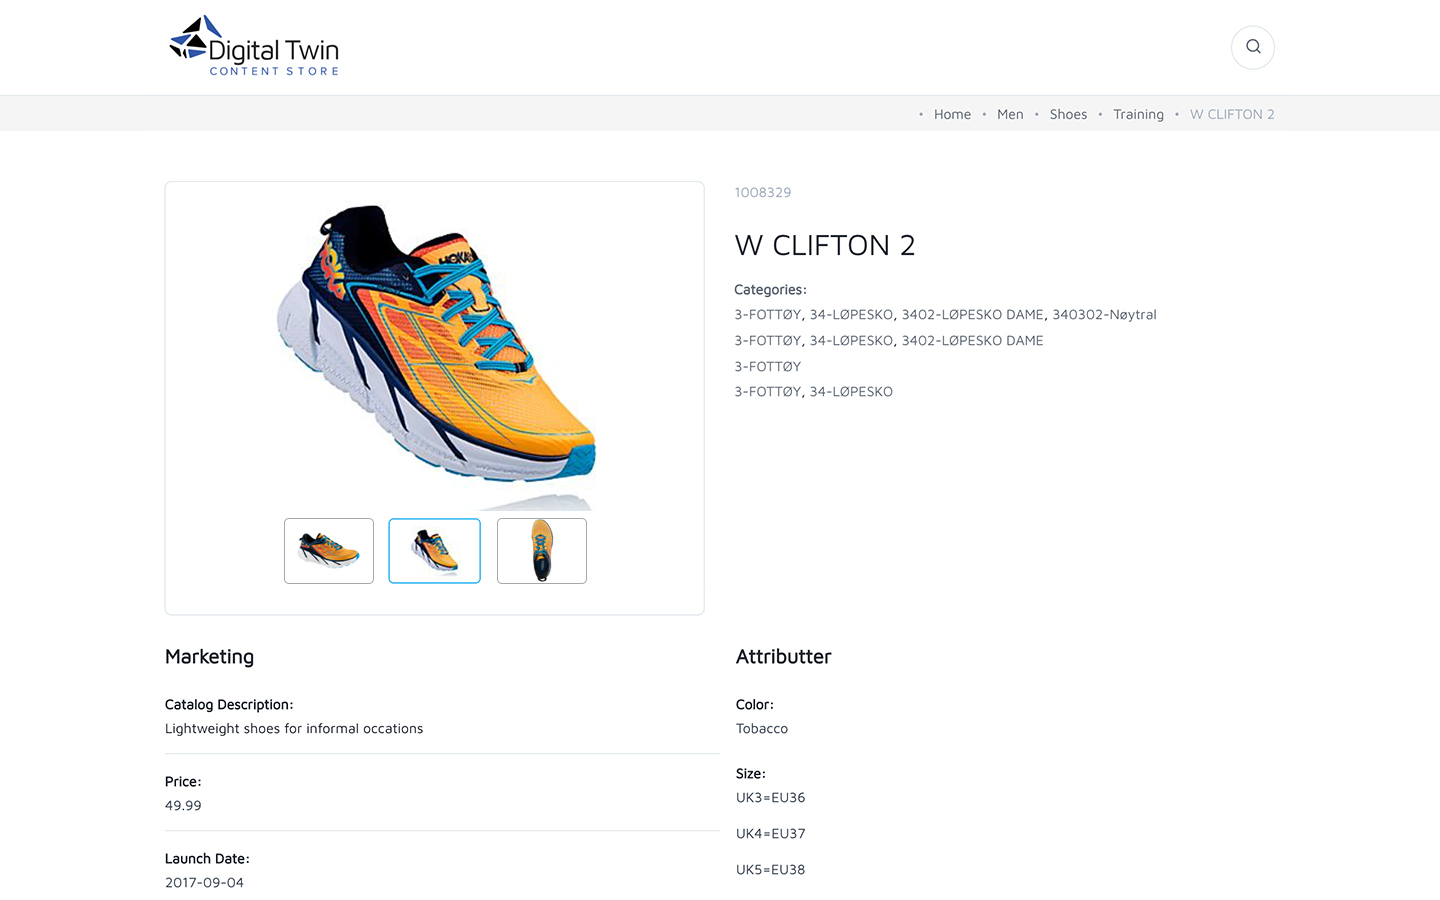 Product page in content store